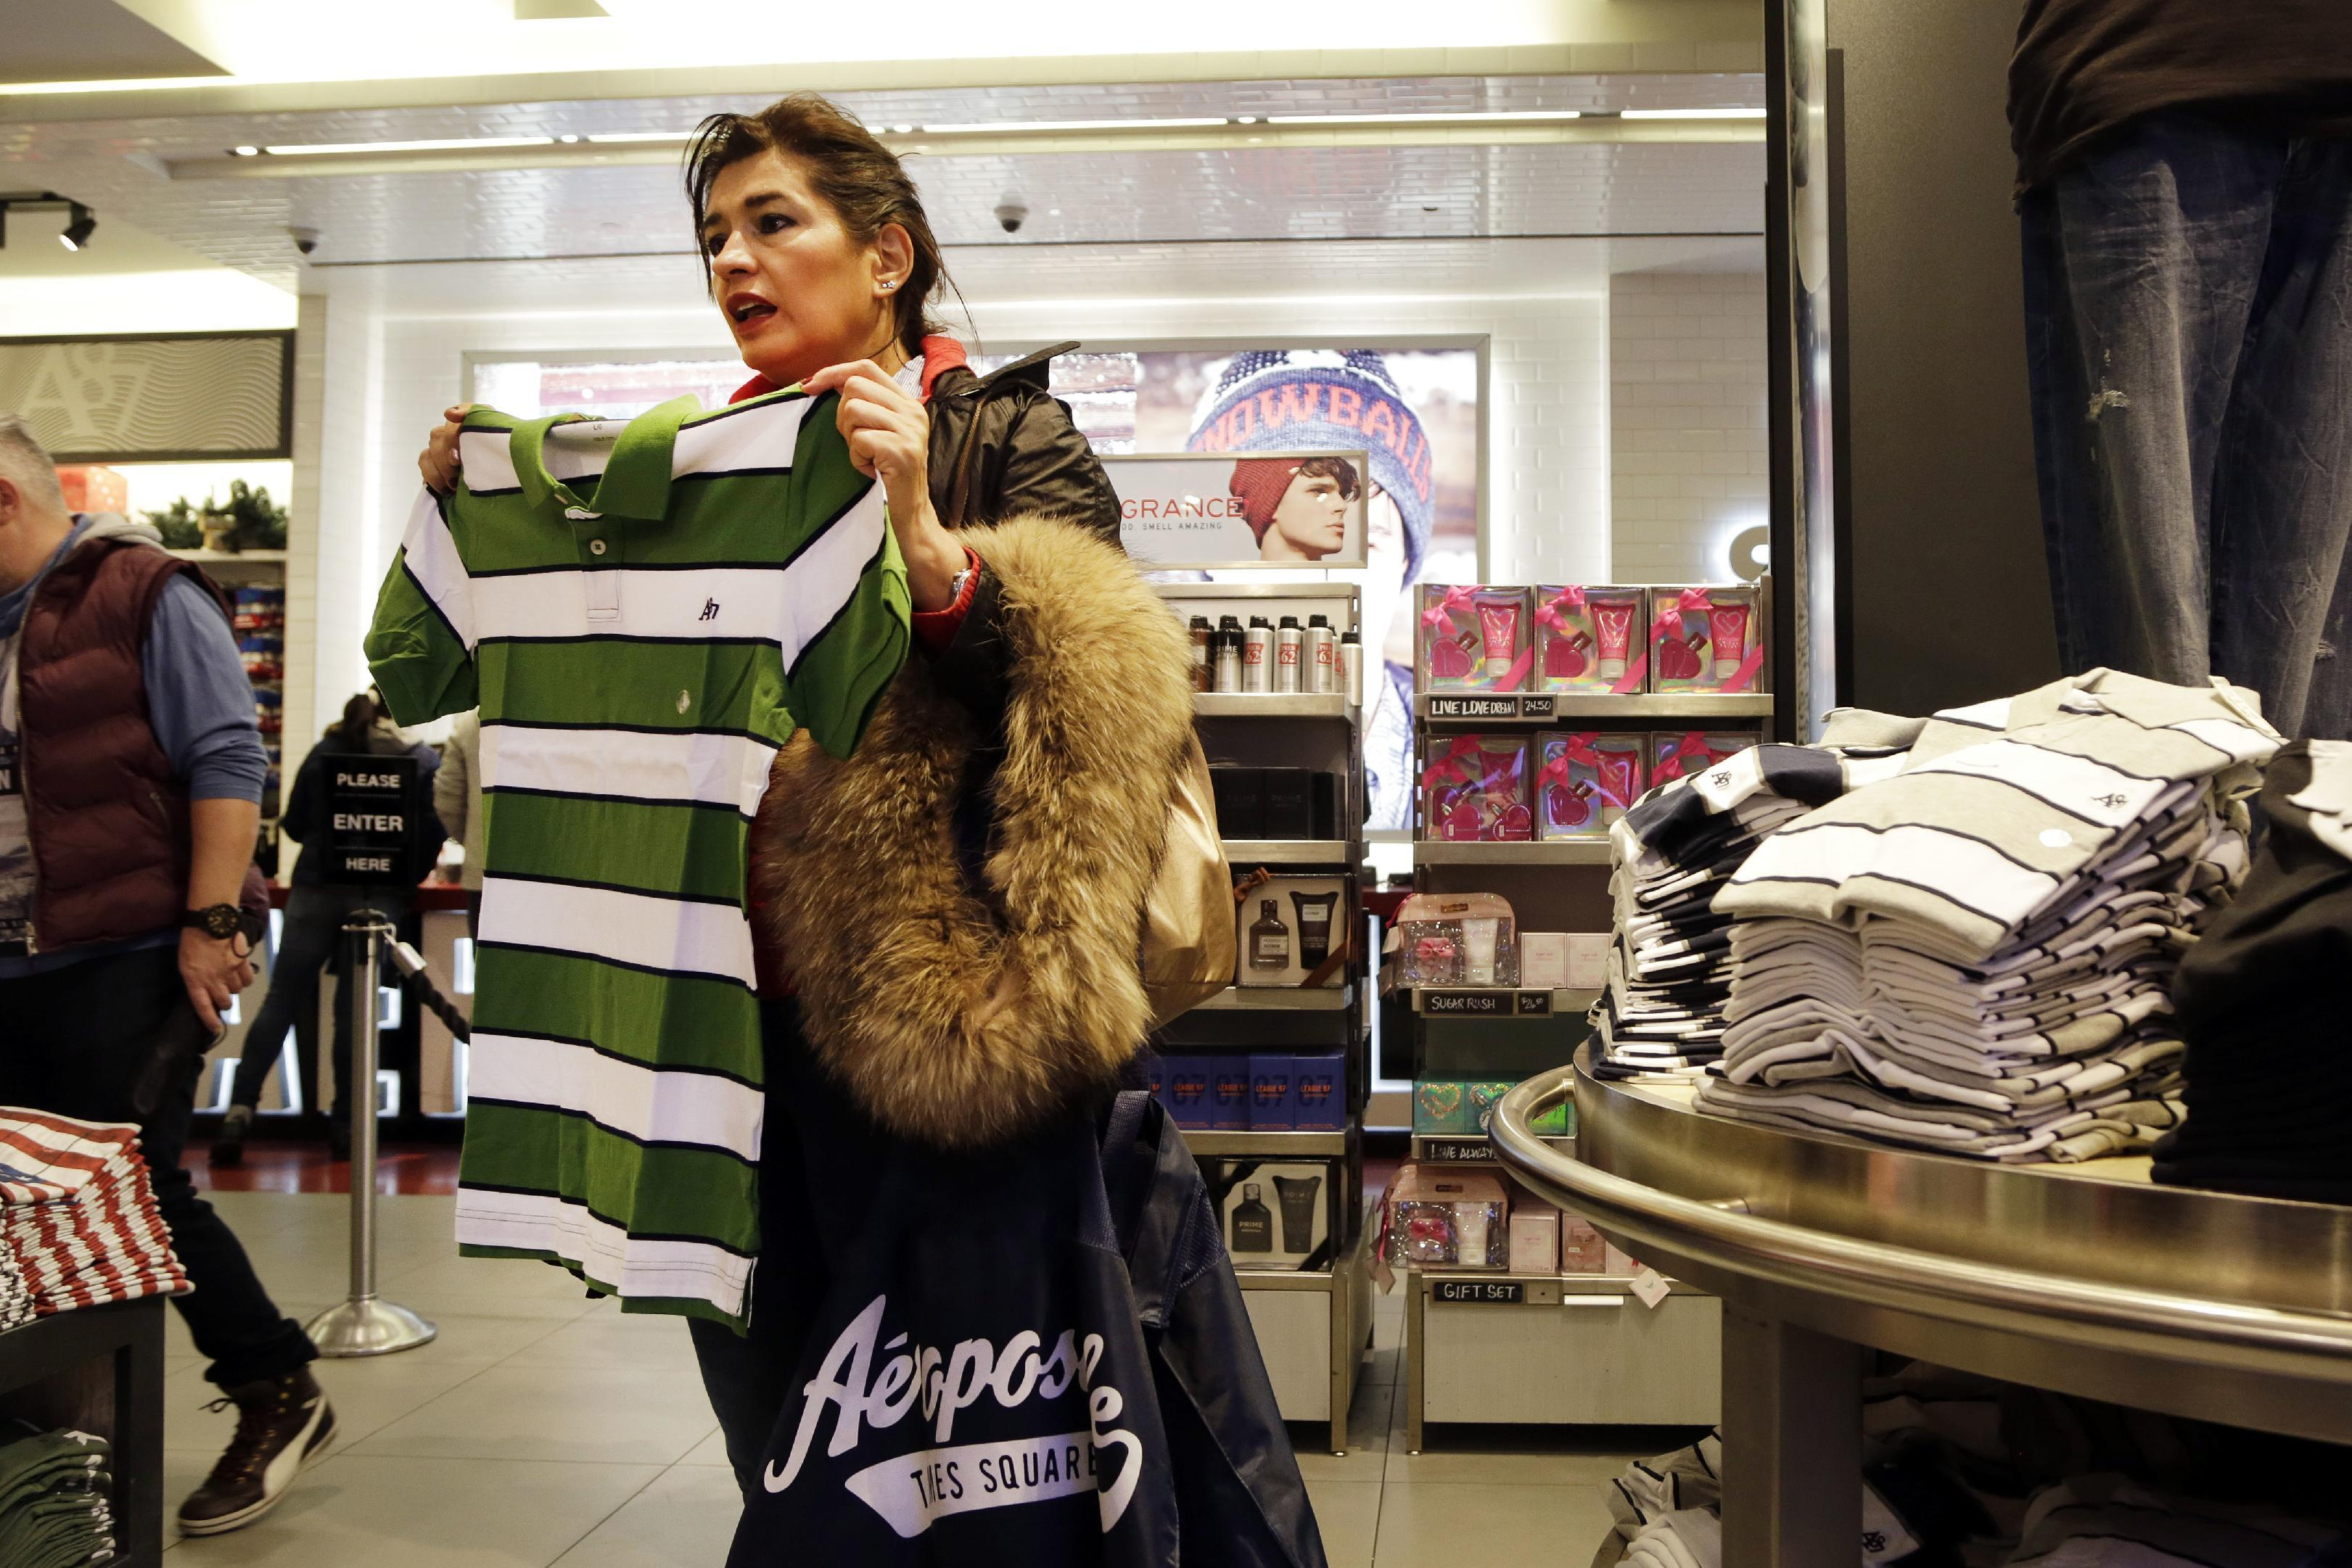 4 reasons why Aeropostale lost its cool with shoppers